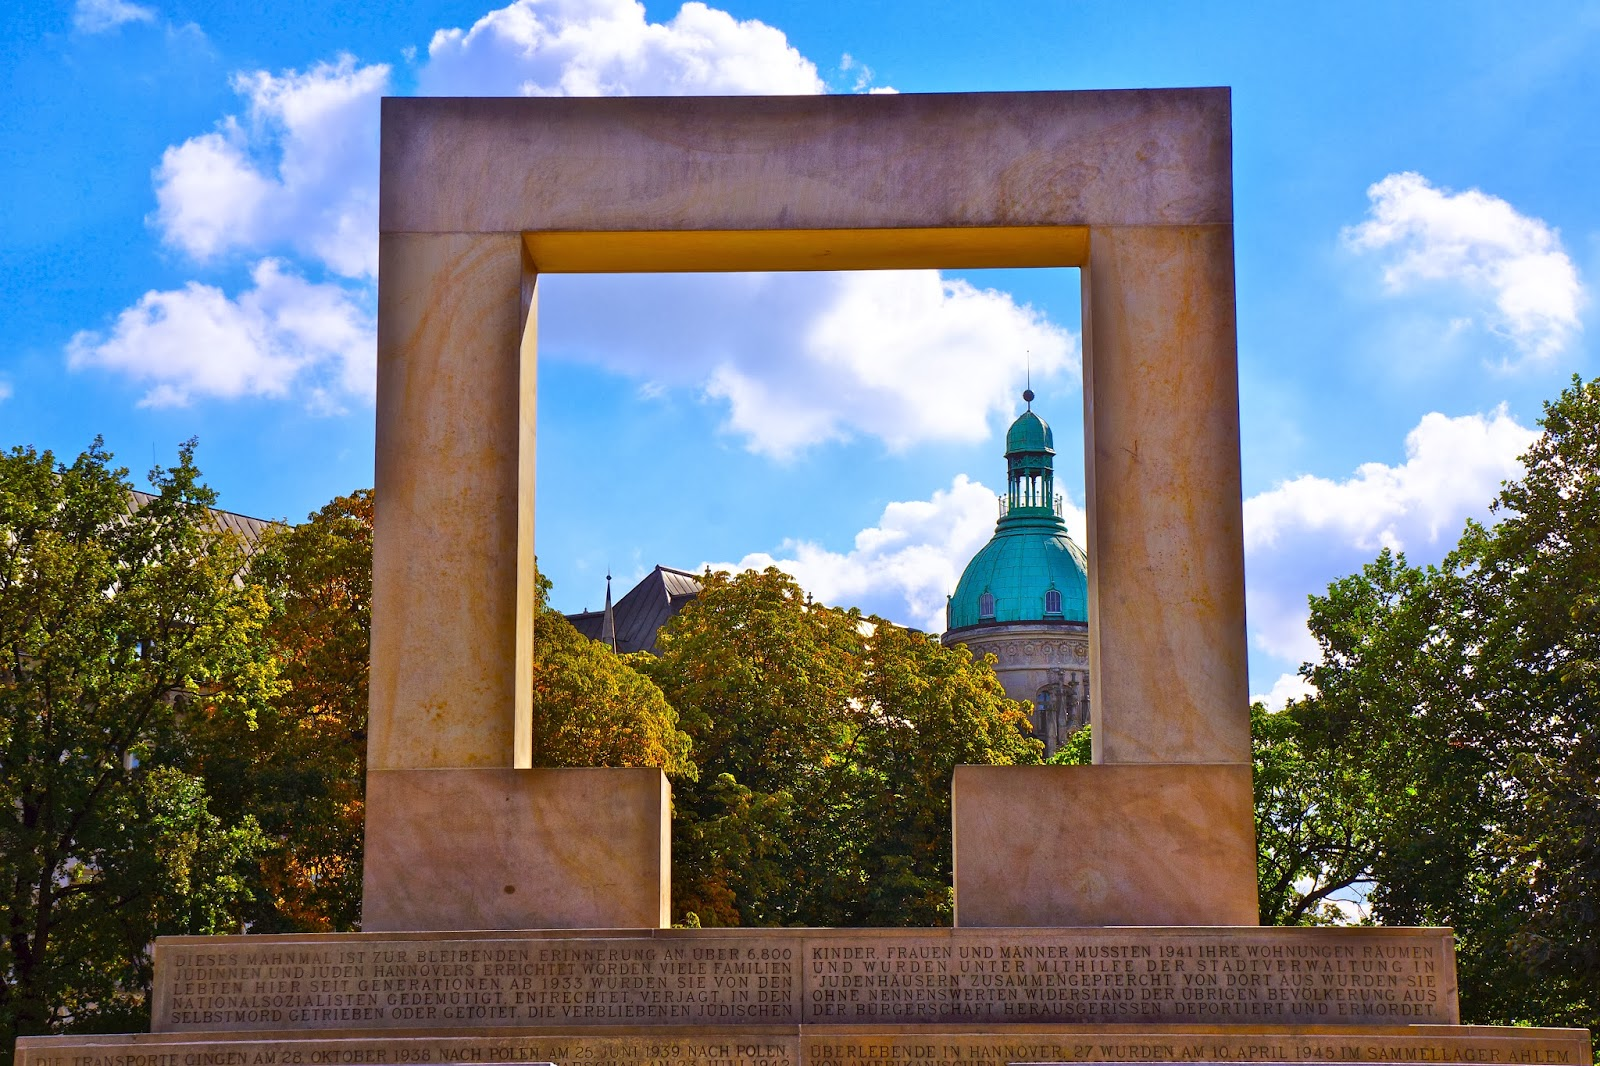 Picture of the Holocaust Monument in Hanover, Germany by Michelangelo Pistoletto.